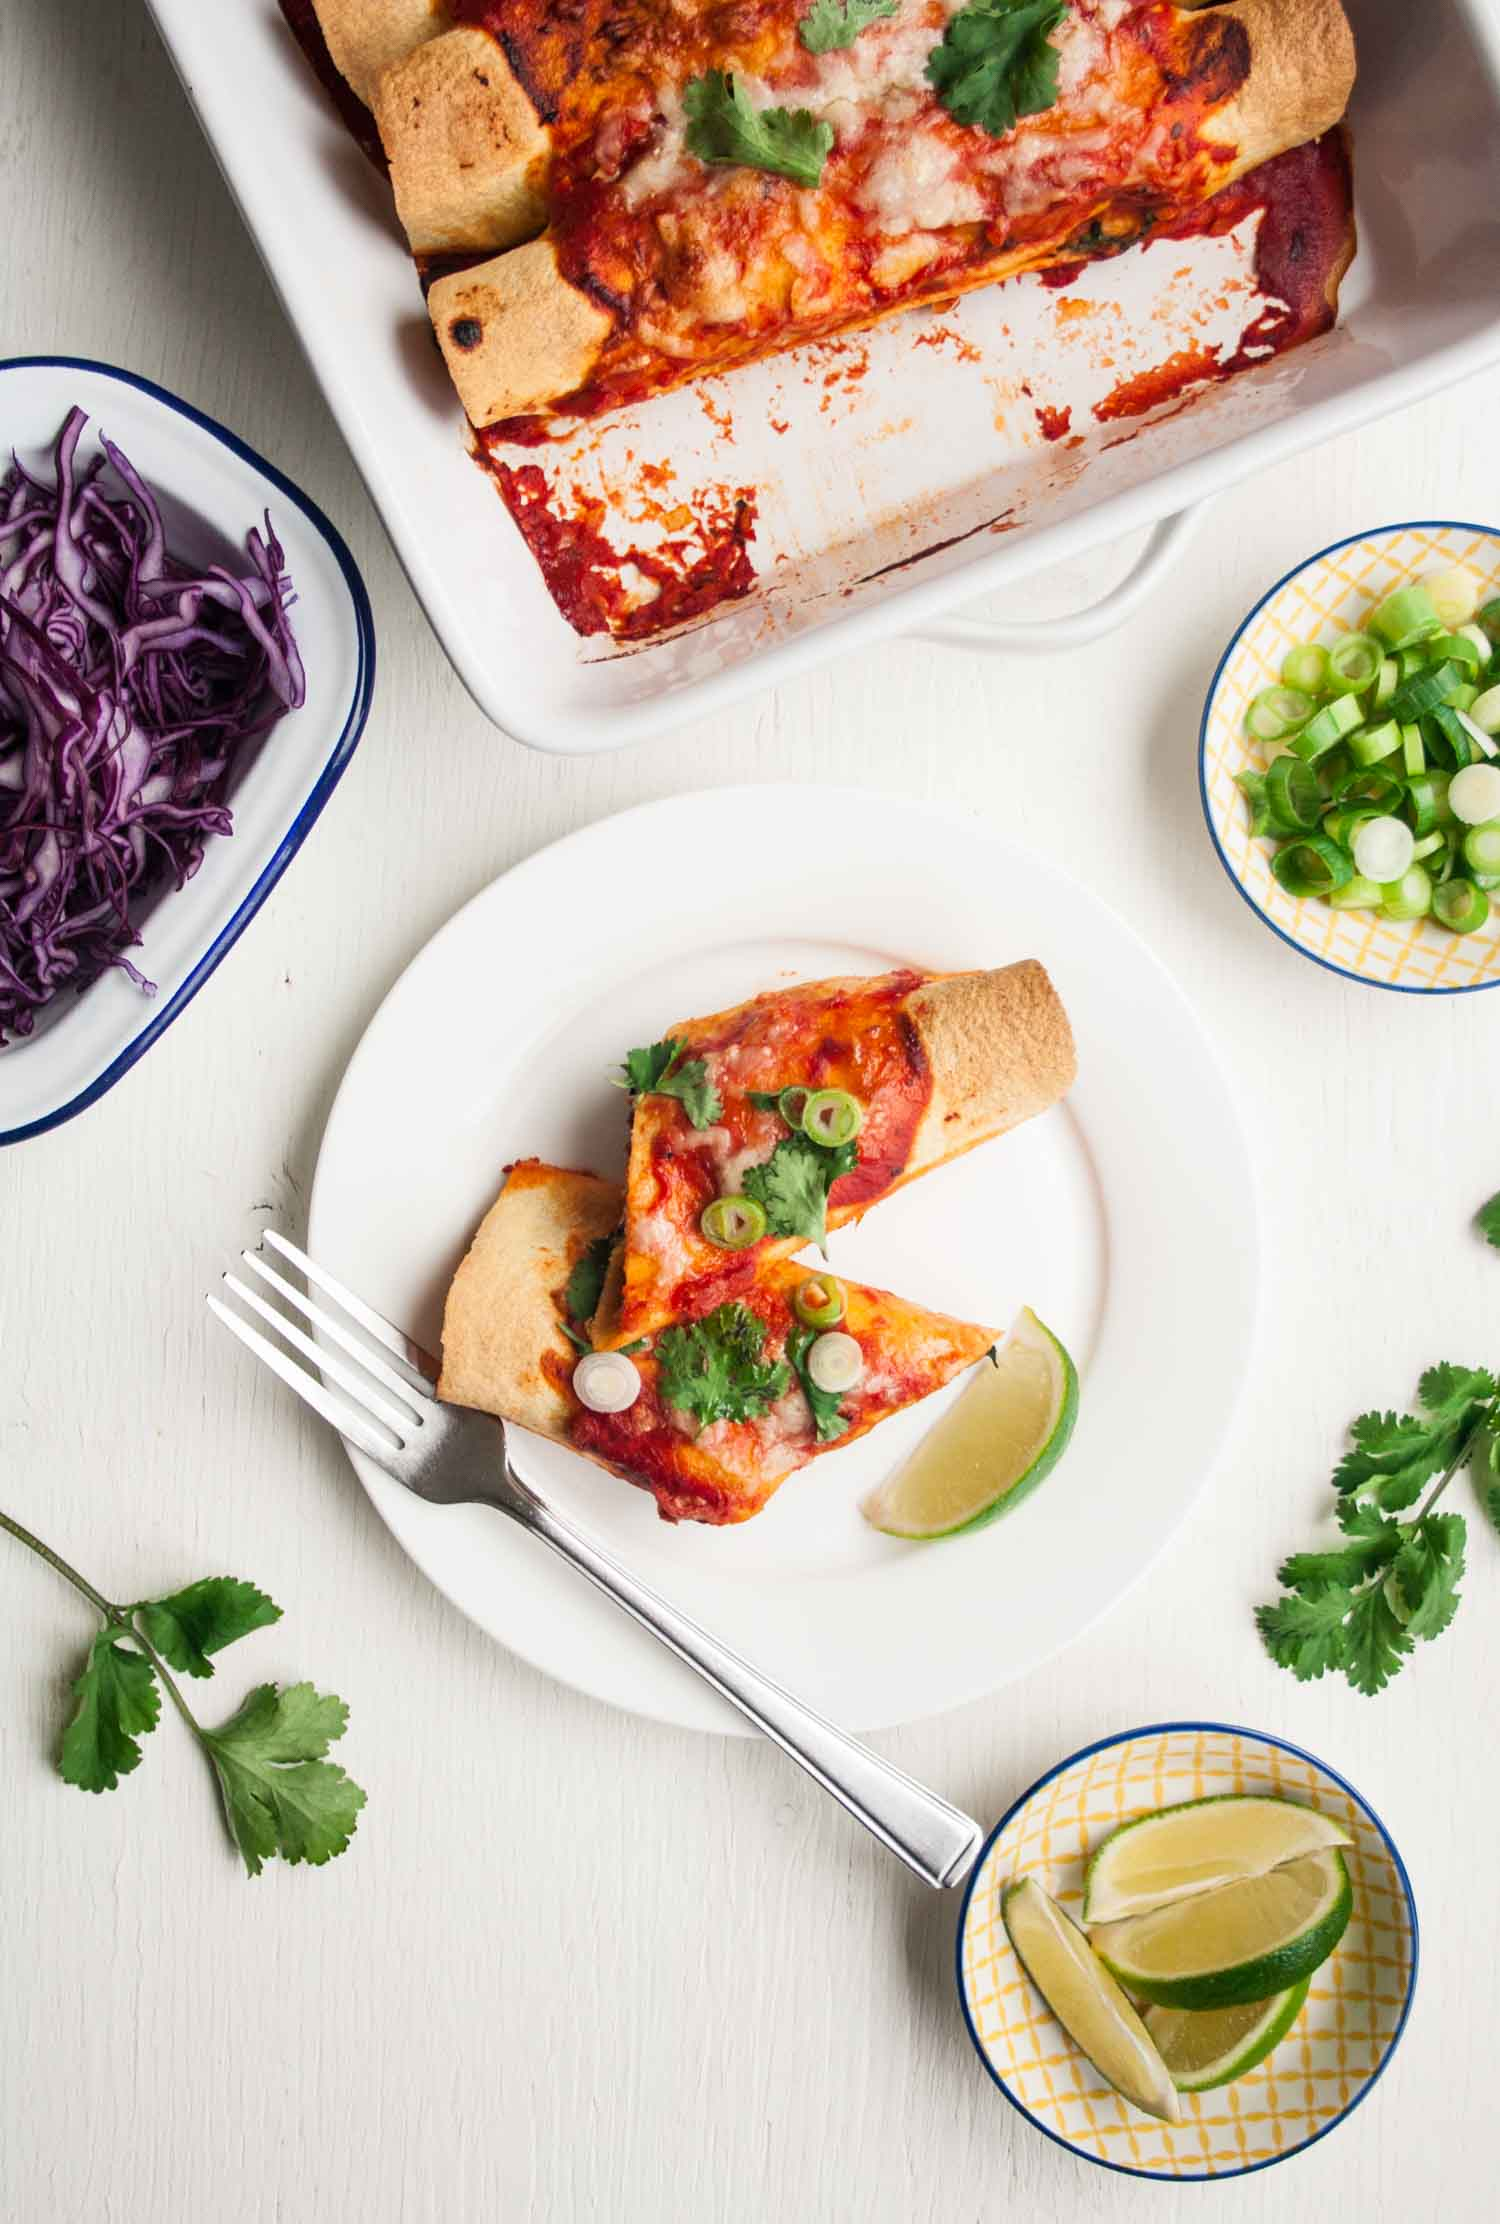 Chicken Enchiladas with Brussels Sprouts and Kale - these hearty enchiladas are full of flavour and feature a simple homemade enchilada sauce and plenty of winter veggies   eatloveeats.com